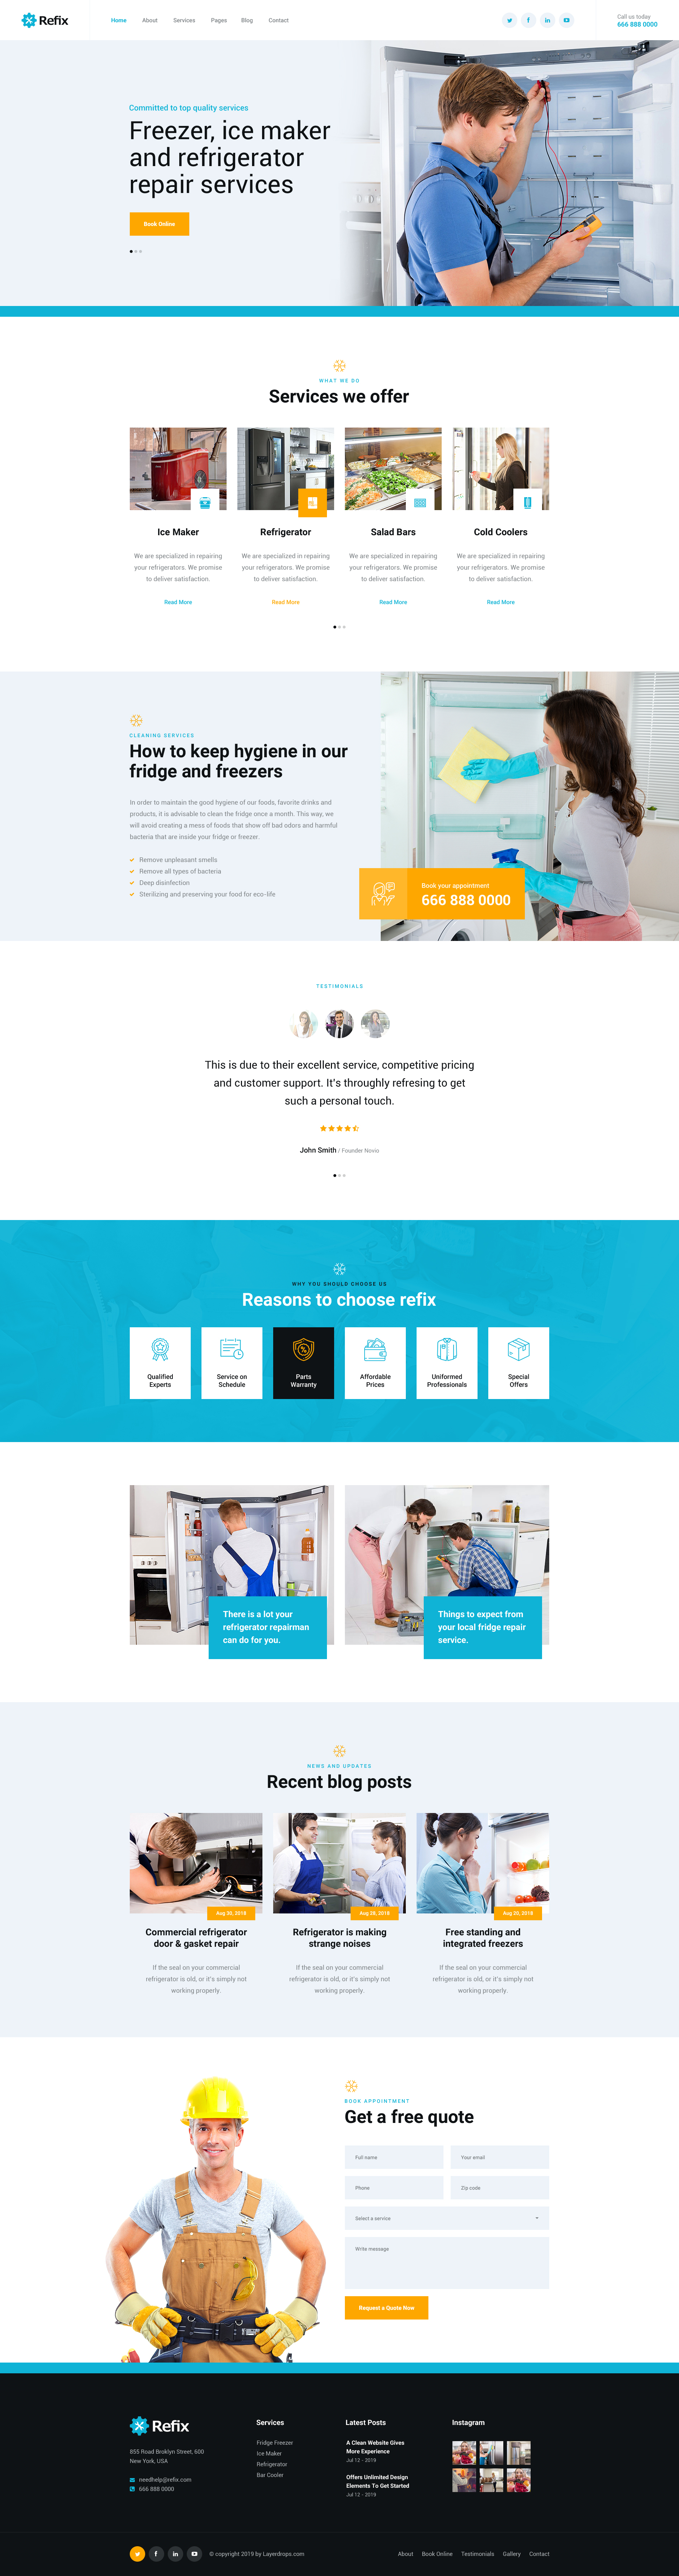 Refix - Fridge & Freezer Repair Company PSD Template